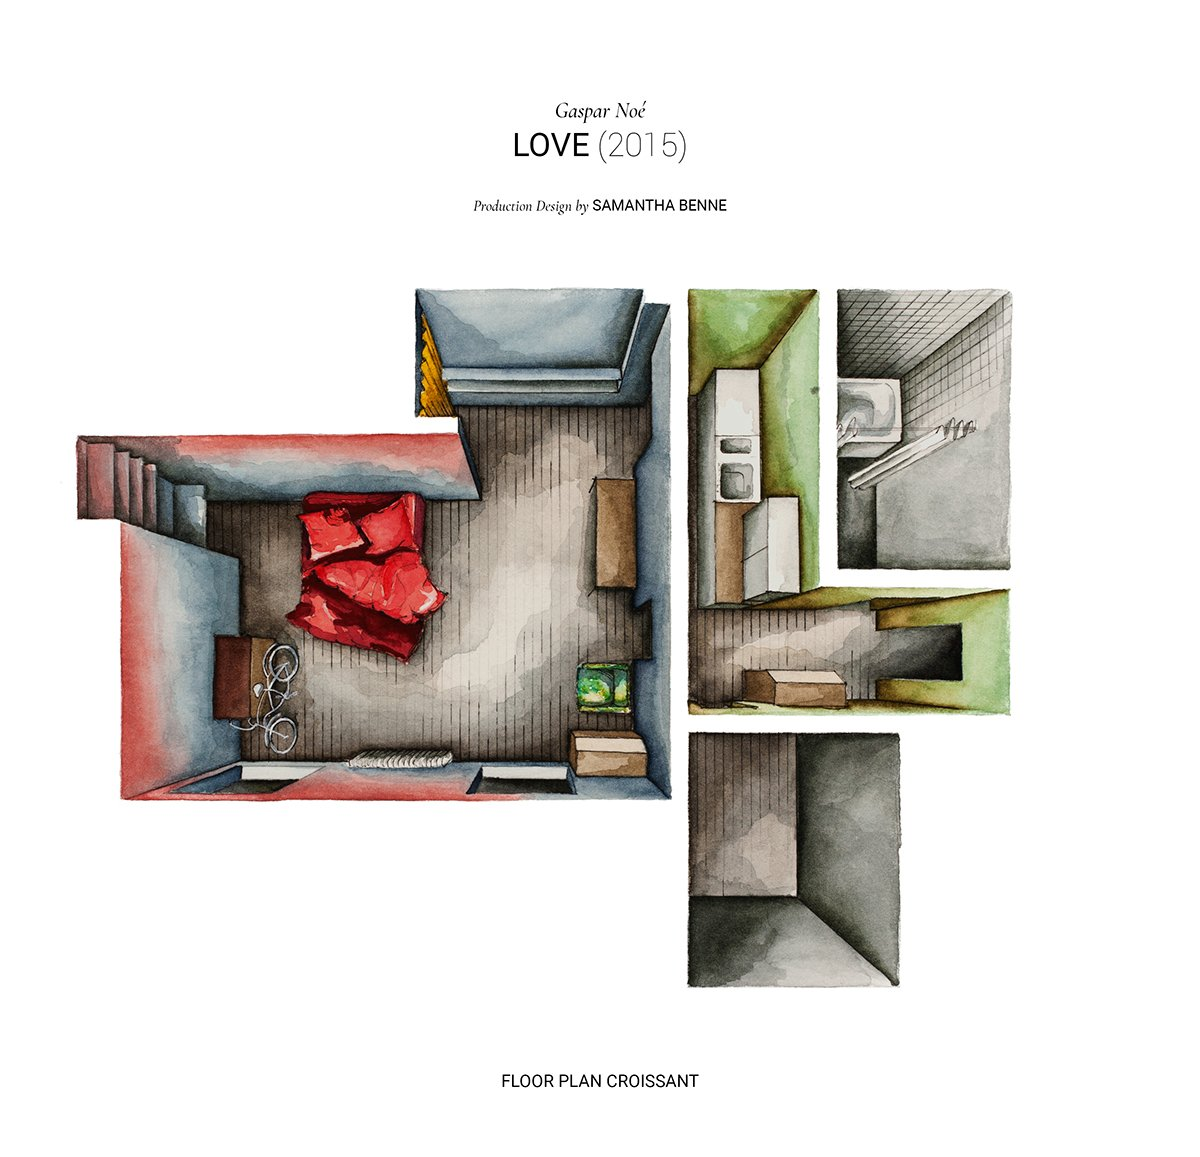 Movie Floor Plans - Watercolor floorplans from recent television shows and films